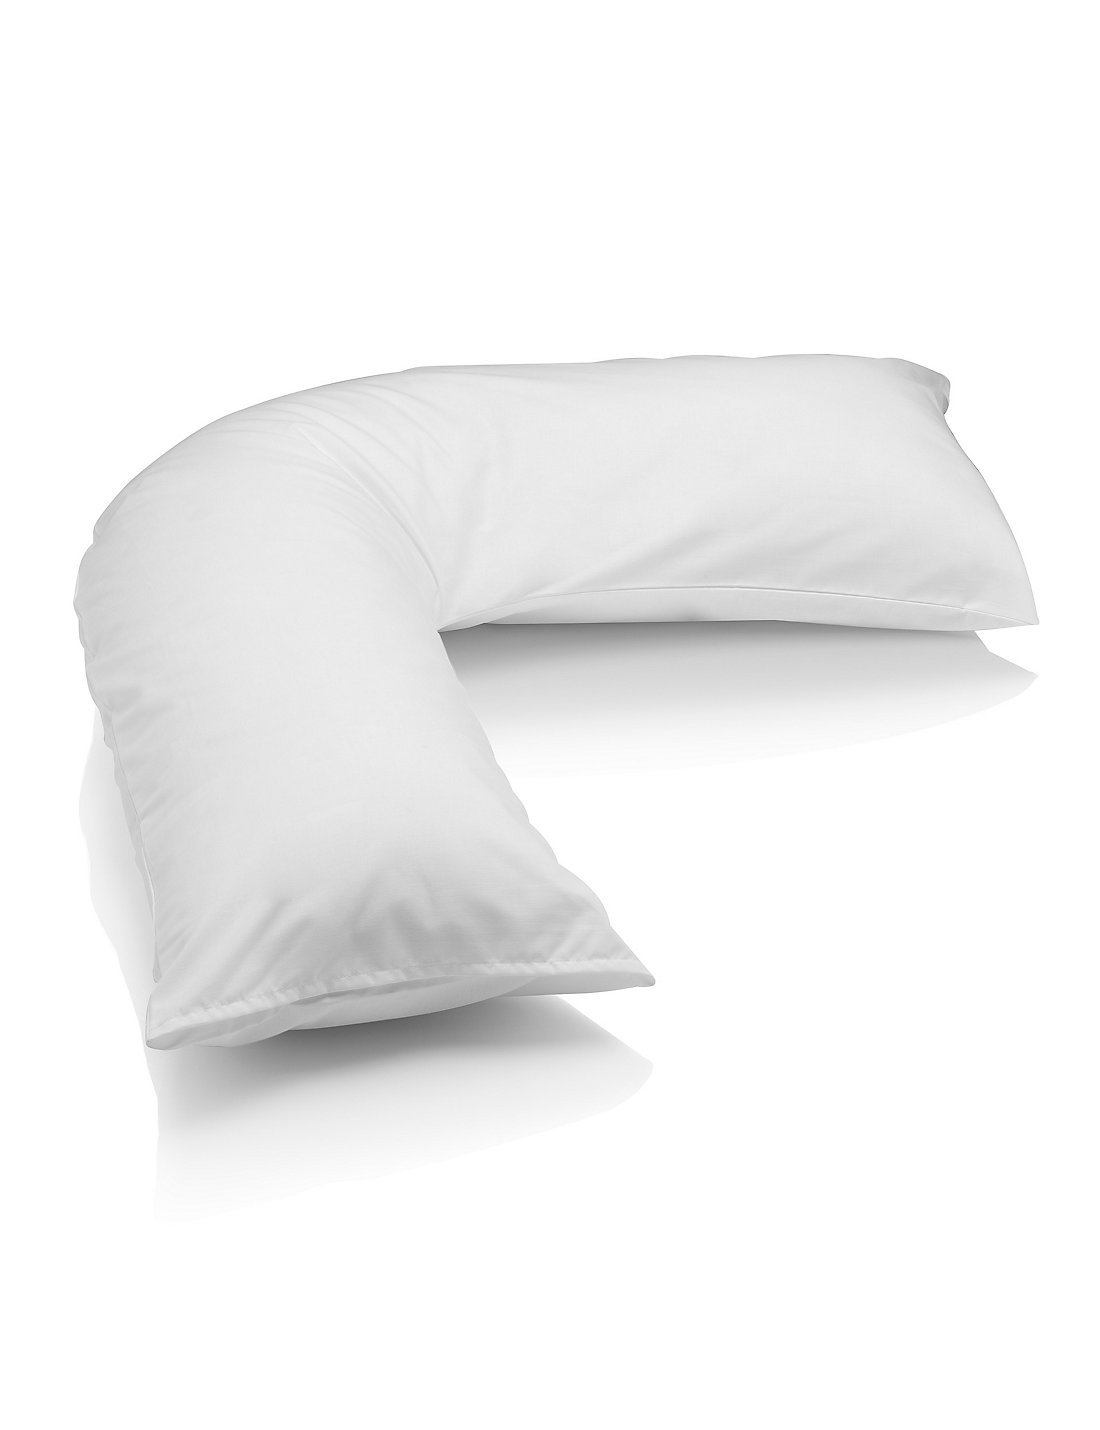 Duck Feather and Down V-Pillow Washable, Anti Dust Mite Nursing Pregnancy and Back Support (Pillow Only) TTO